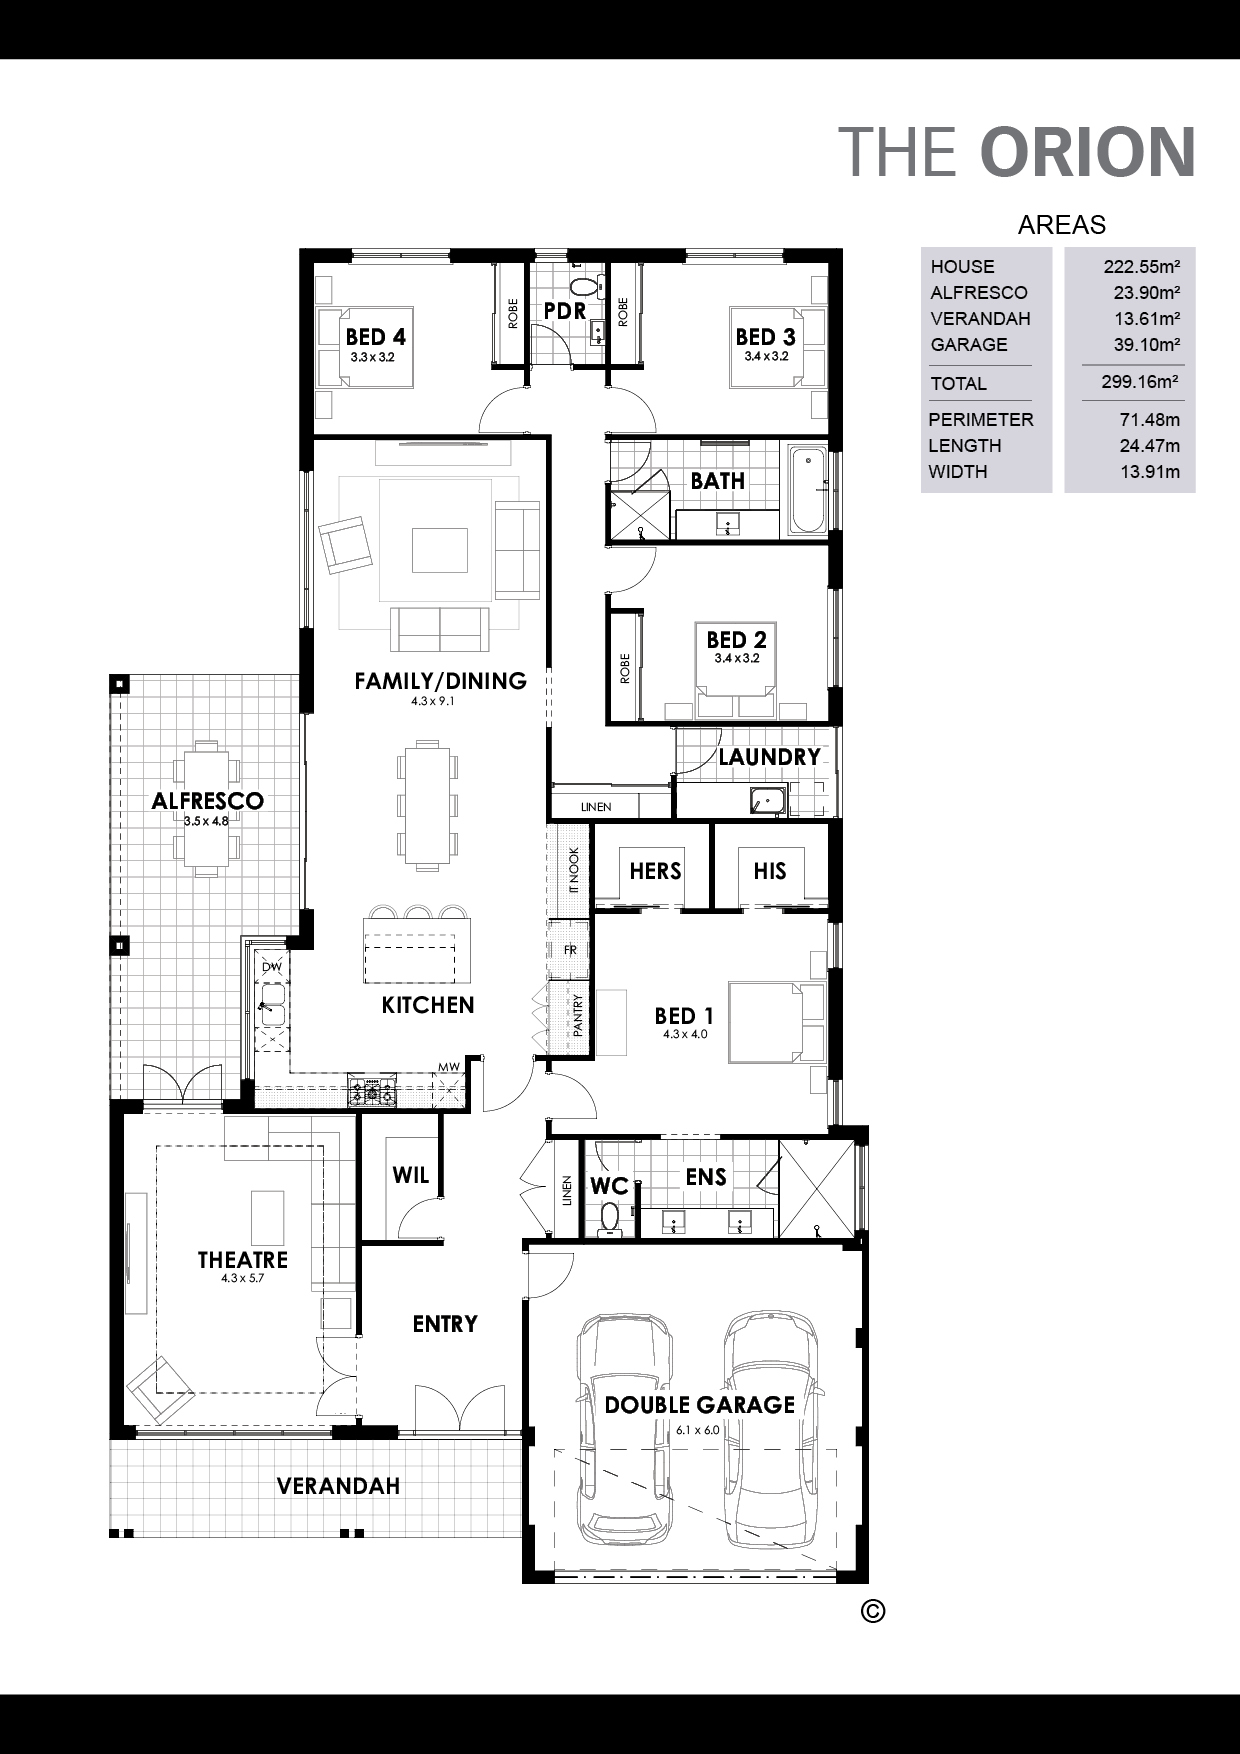 The Orion Floorplan